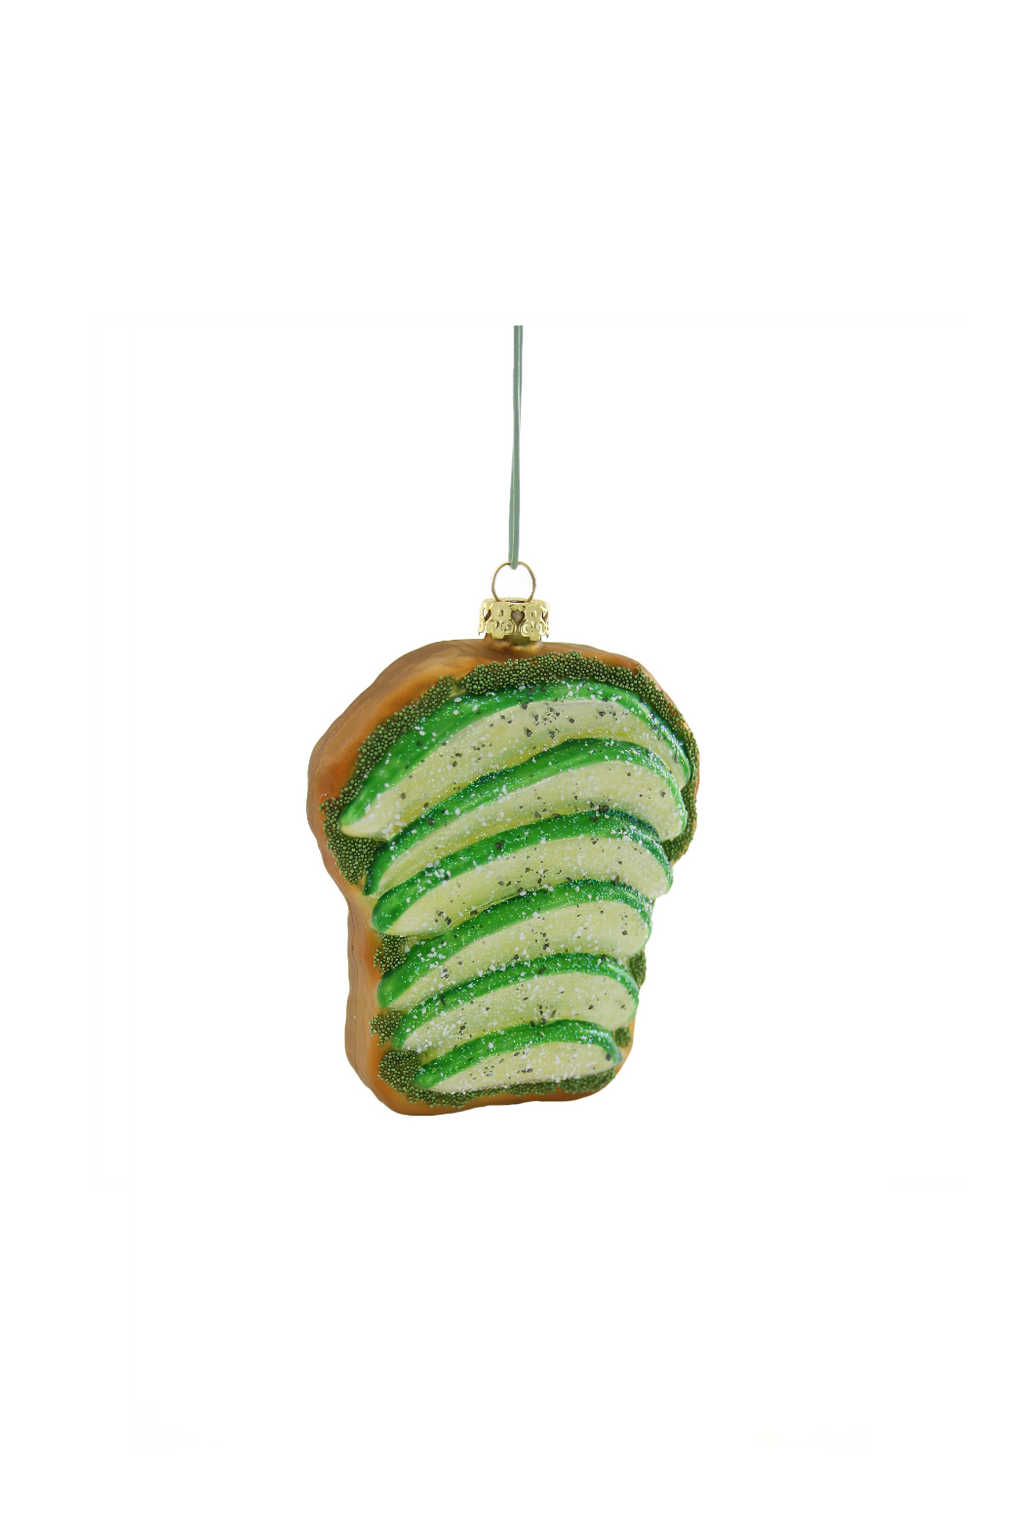 Cody Foster Avocado Toast Ornament